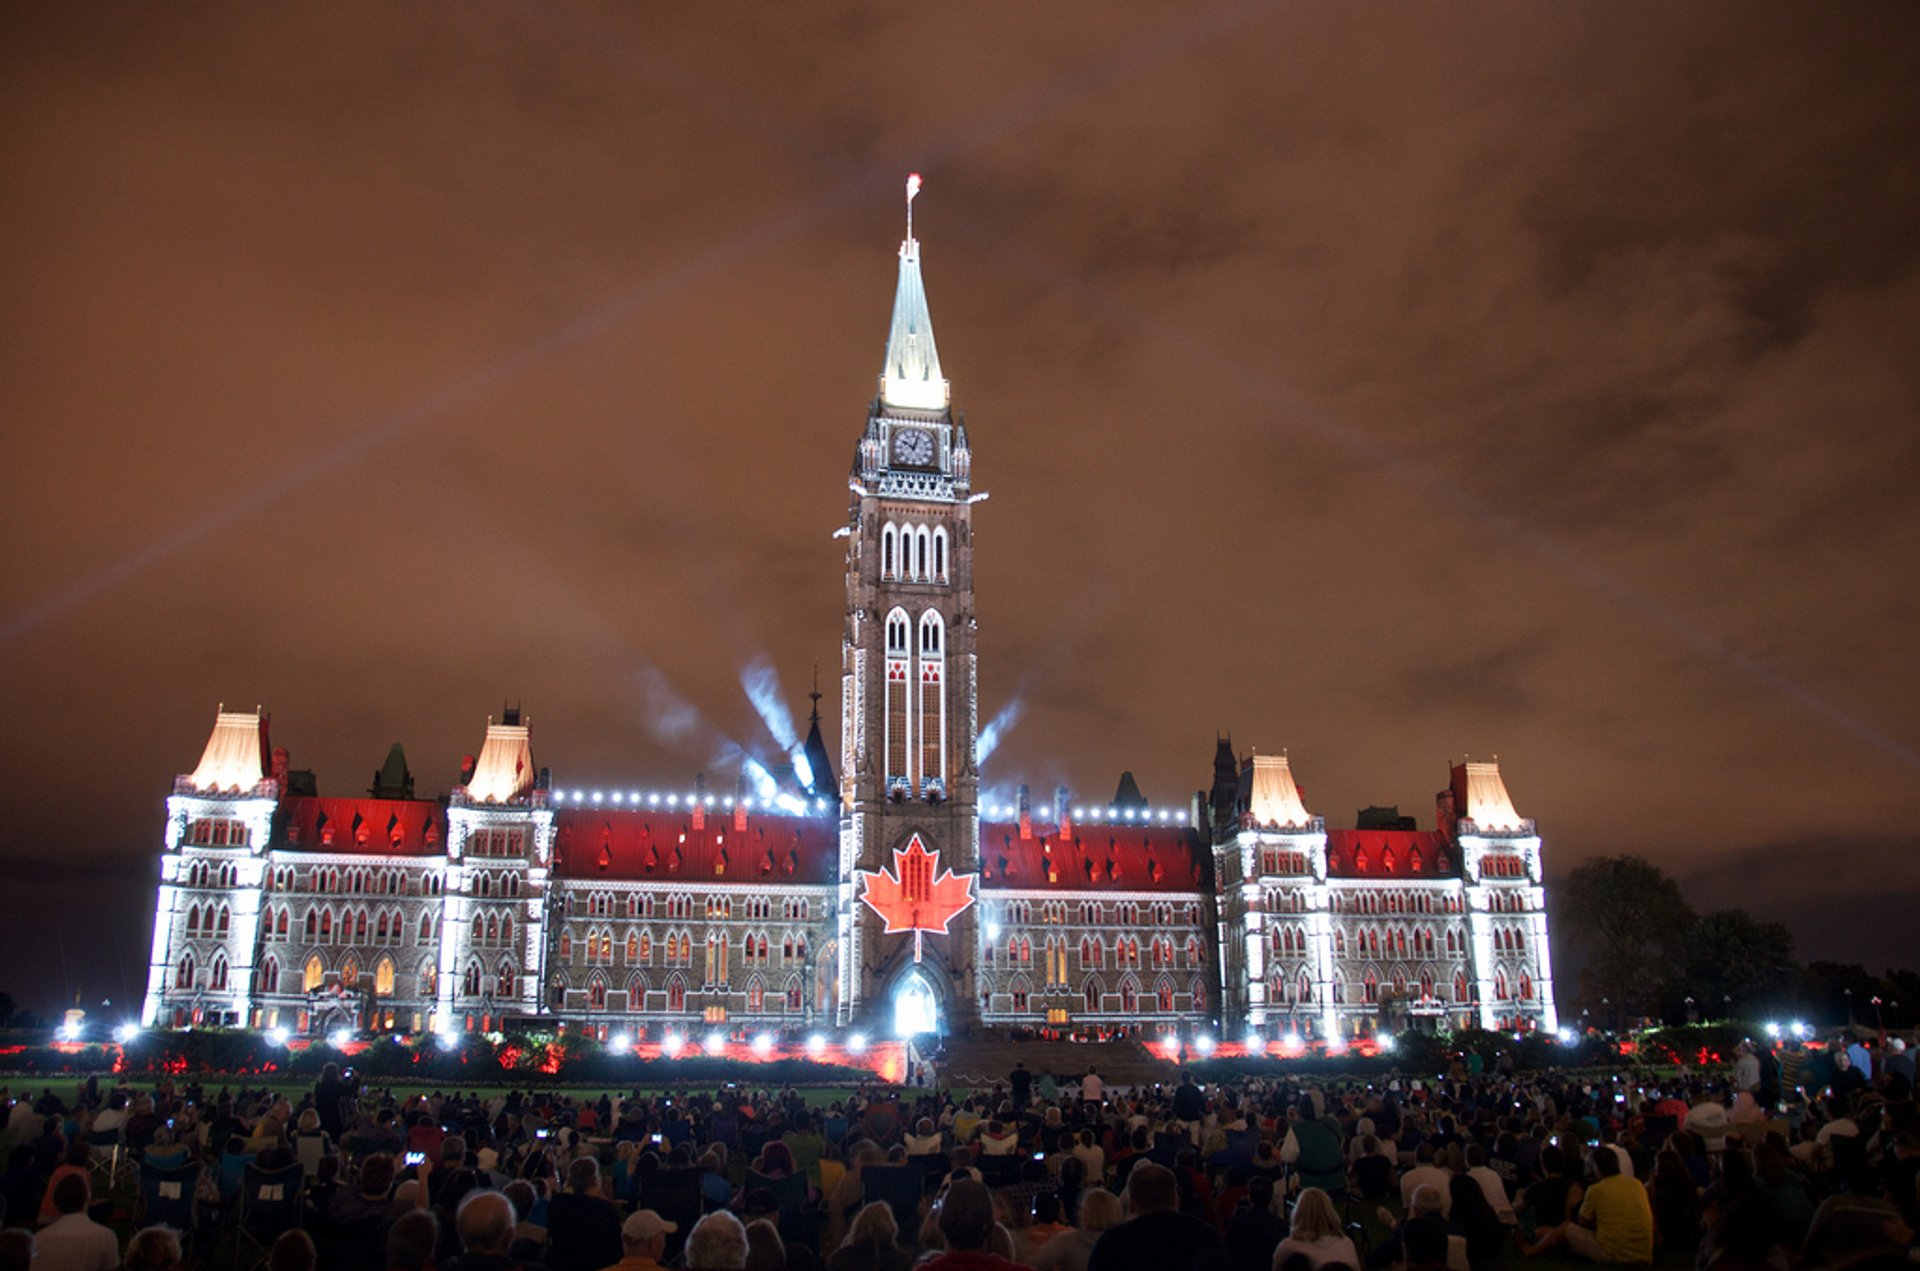 Sound and Light Show on Parliament Hill in Ottawa - Best Season 2020